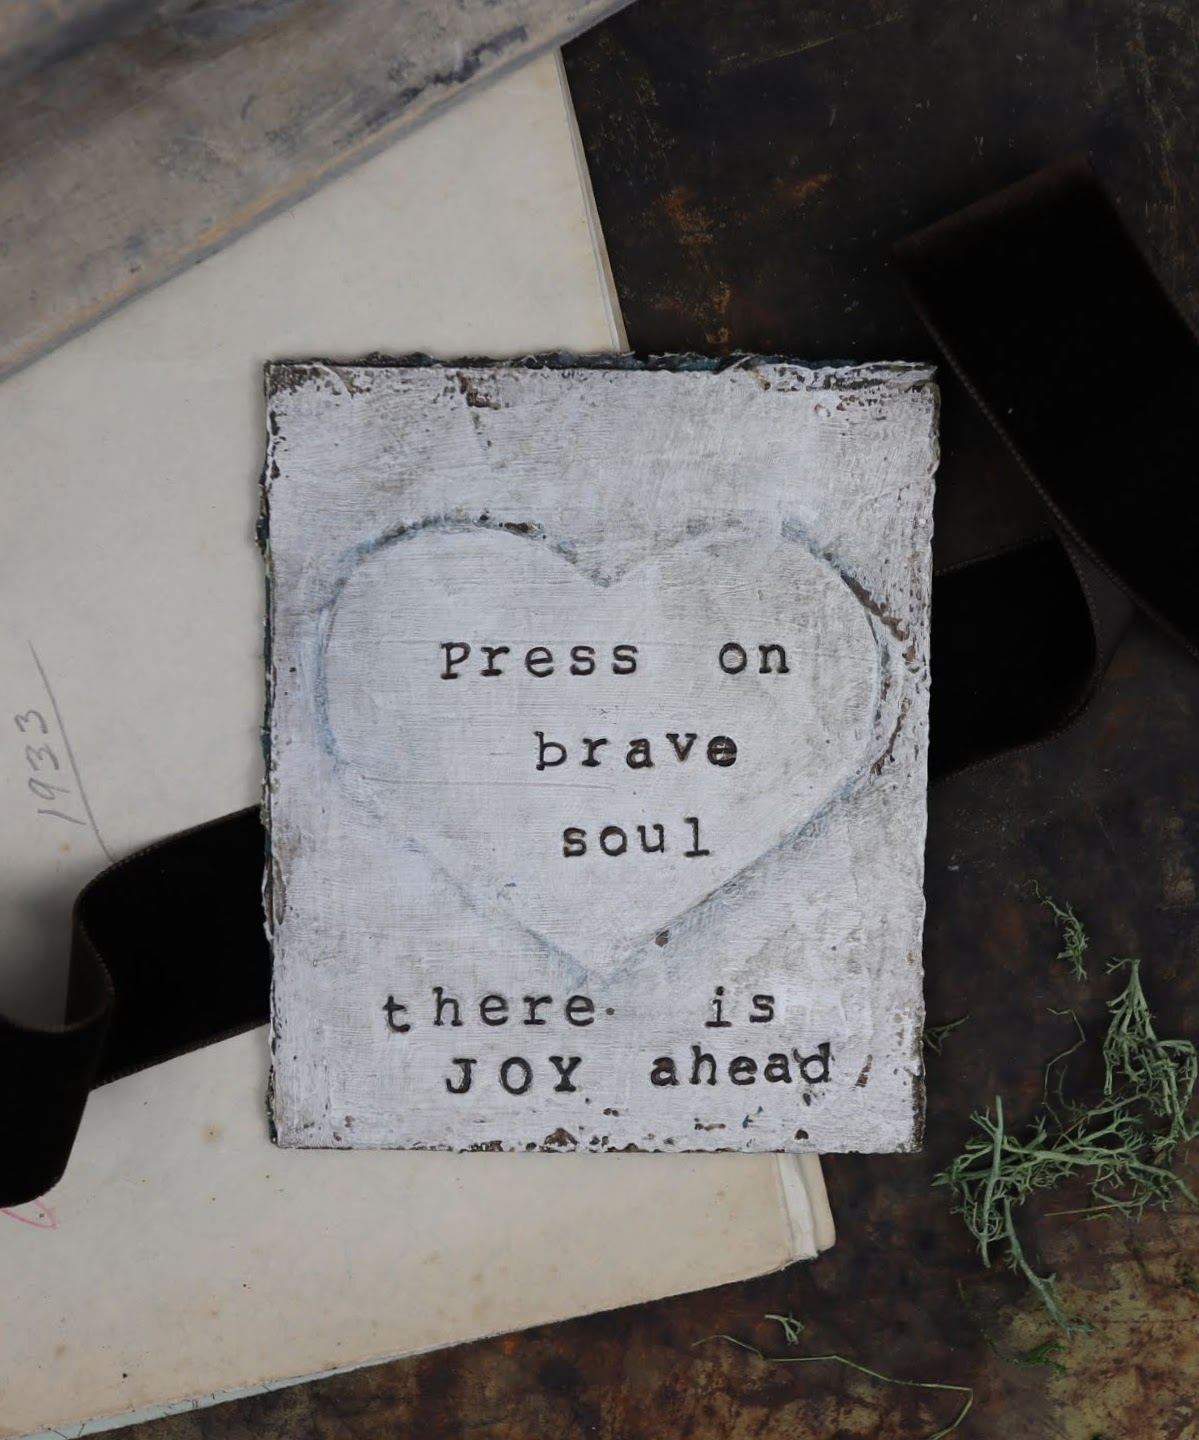 press on brave soul, there is joy ahead